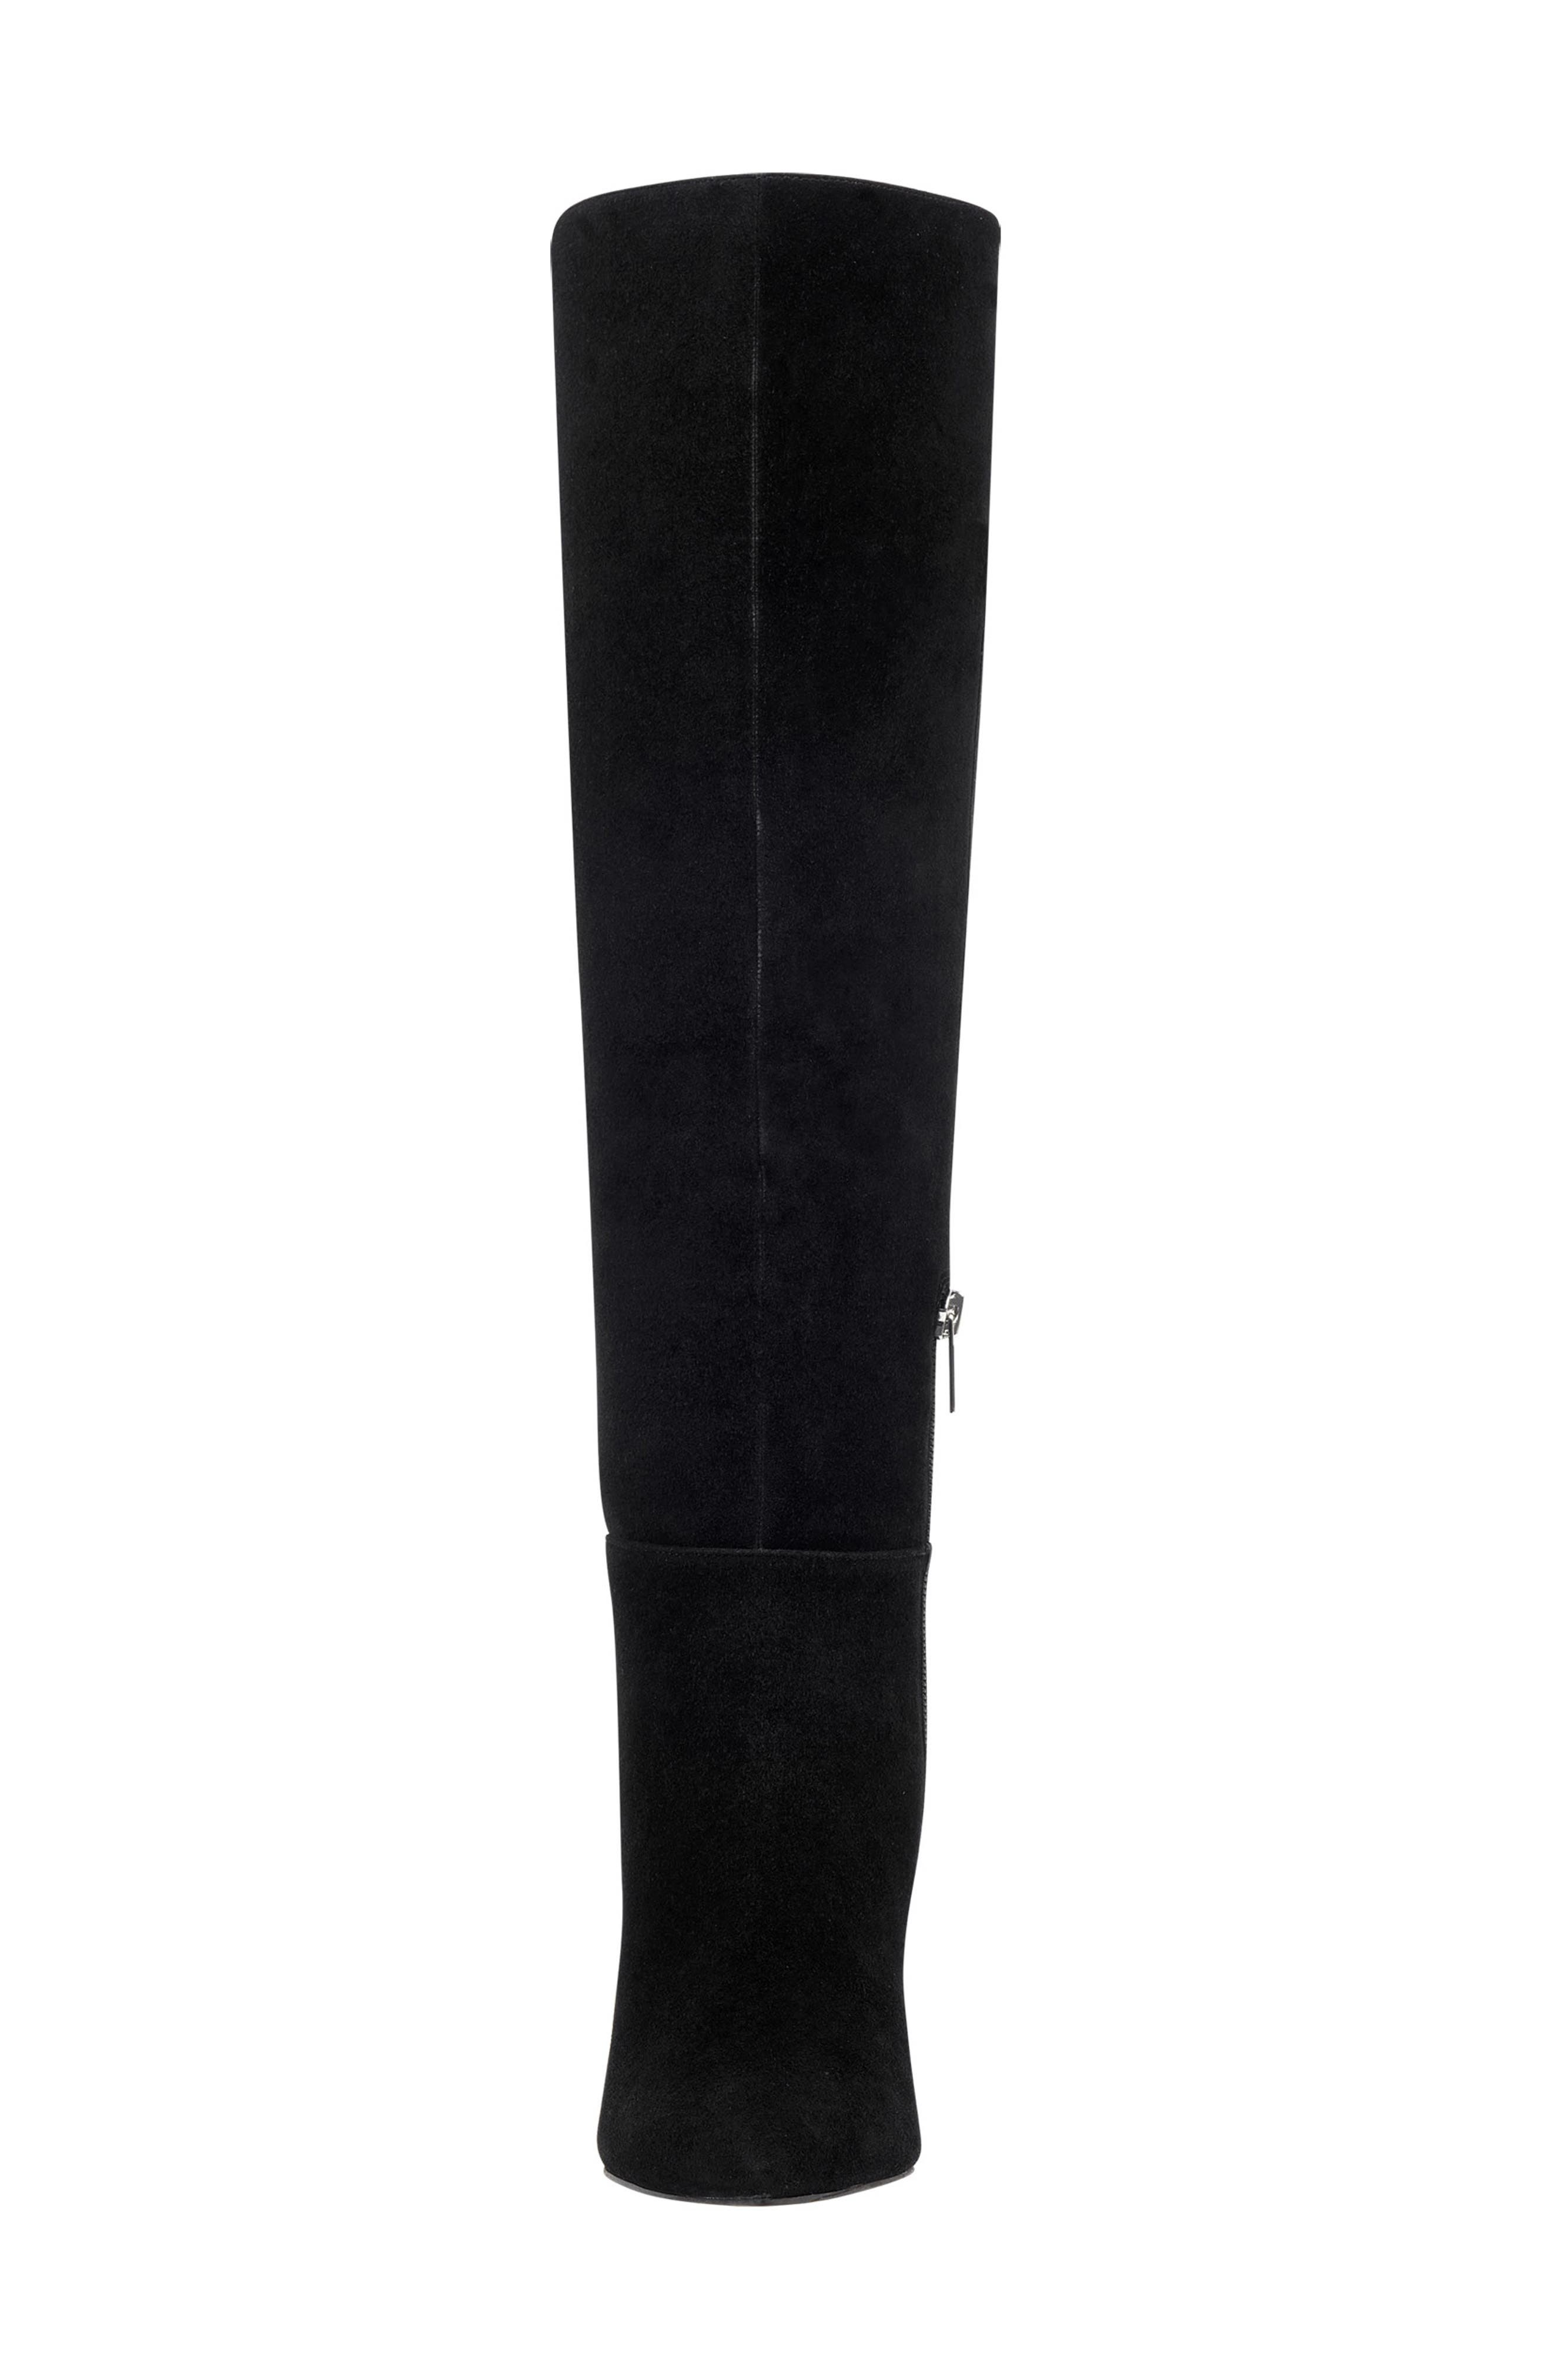 Ulana Knee High Boot,                             Alternate thumbnail 4, color,                             BLACK SUEDE